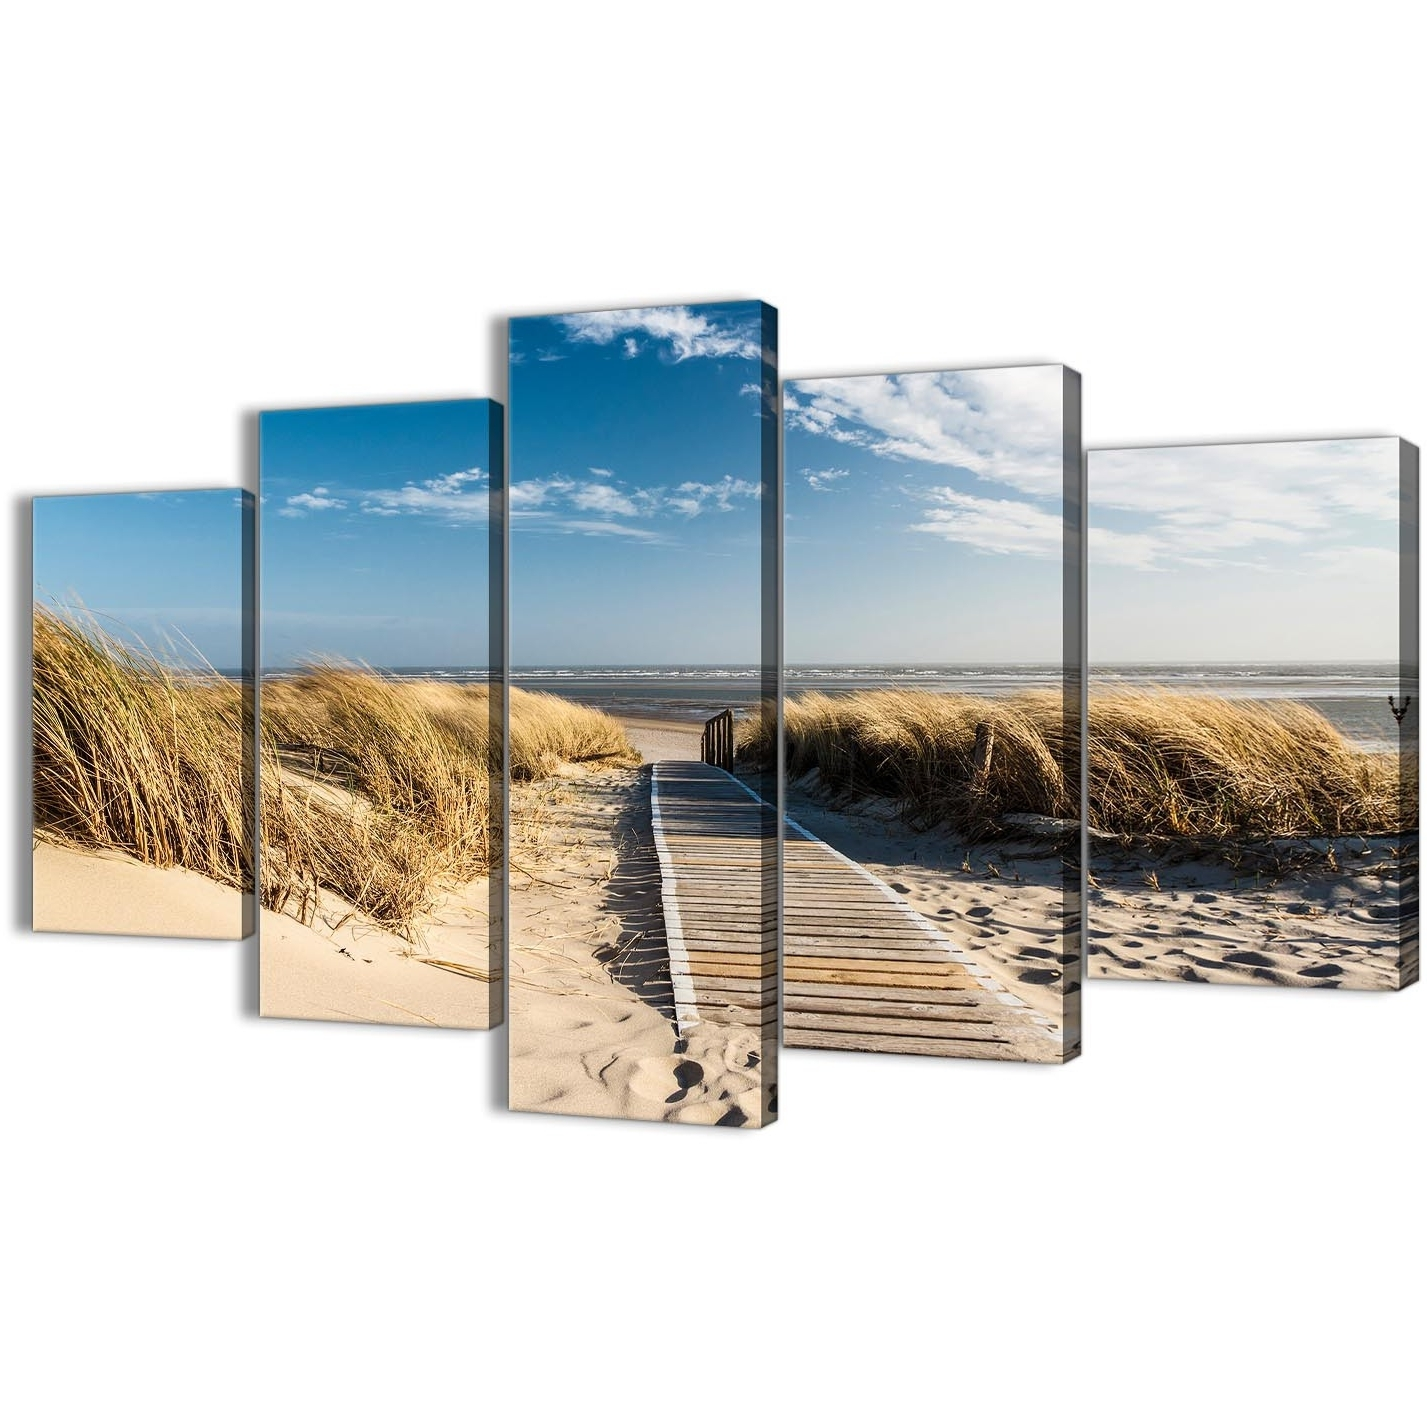 5 Piece Canvas Wall Art For Most Current 5 Piece Beach Landscape Canvas Wall Art Pictures – Pathway To The (View 16 of 20)